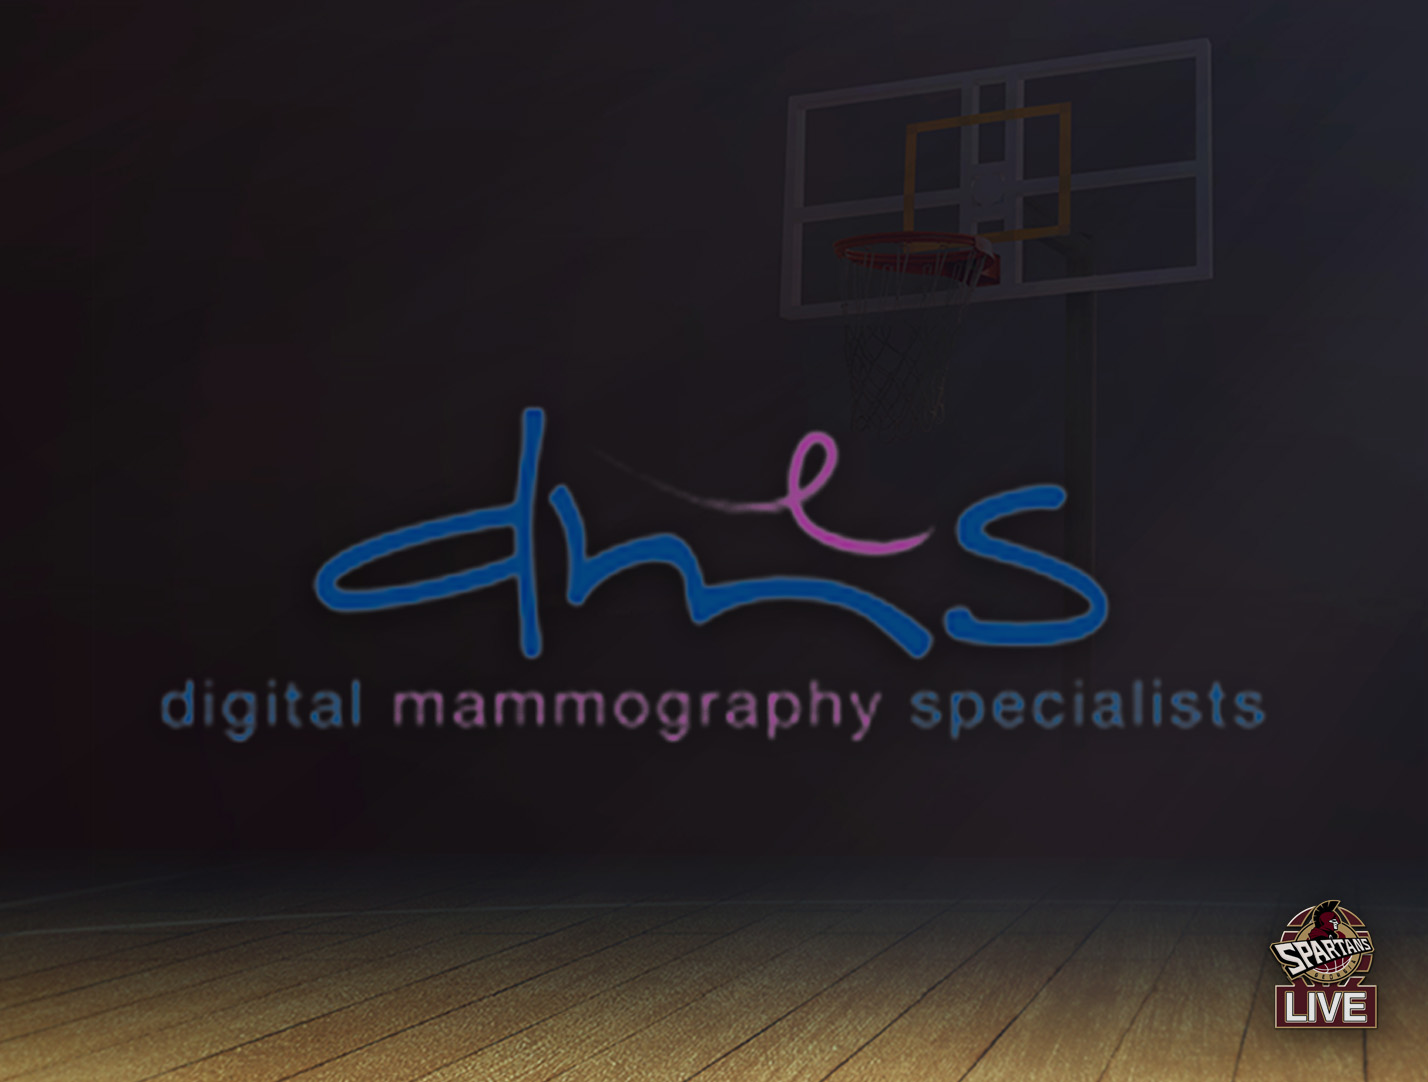 Digital Mammography Specialists Georgia Spartans Team Sponsor